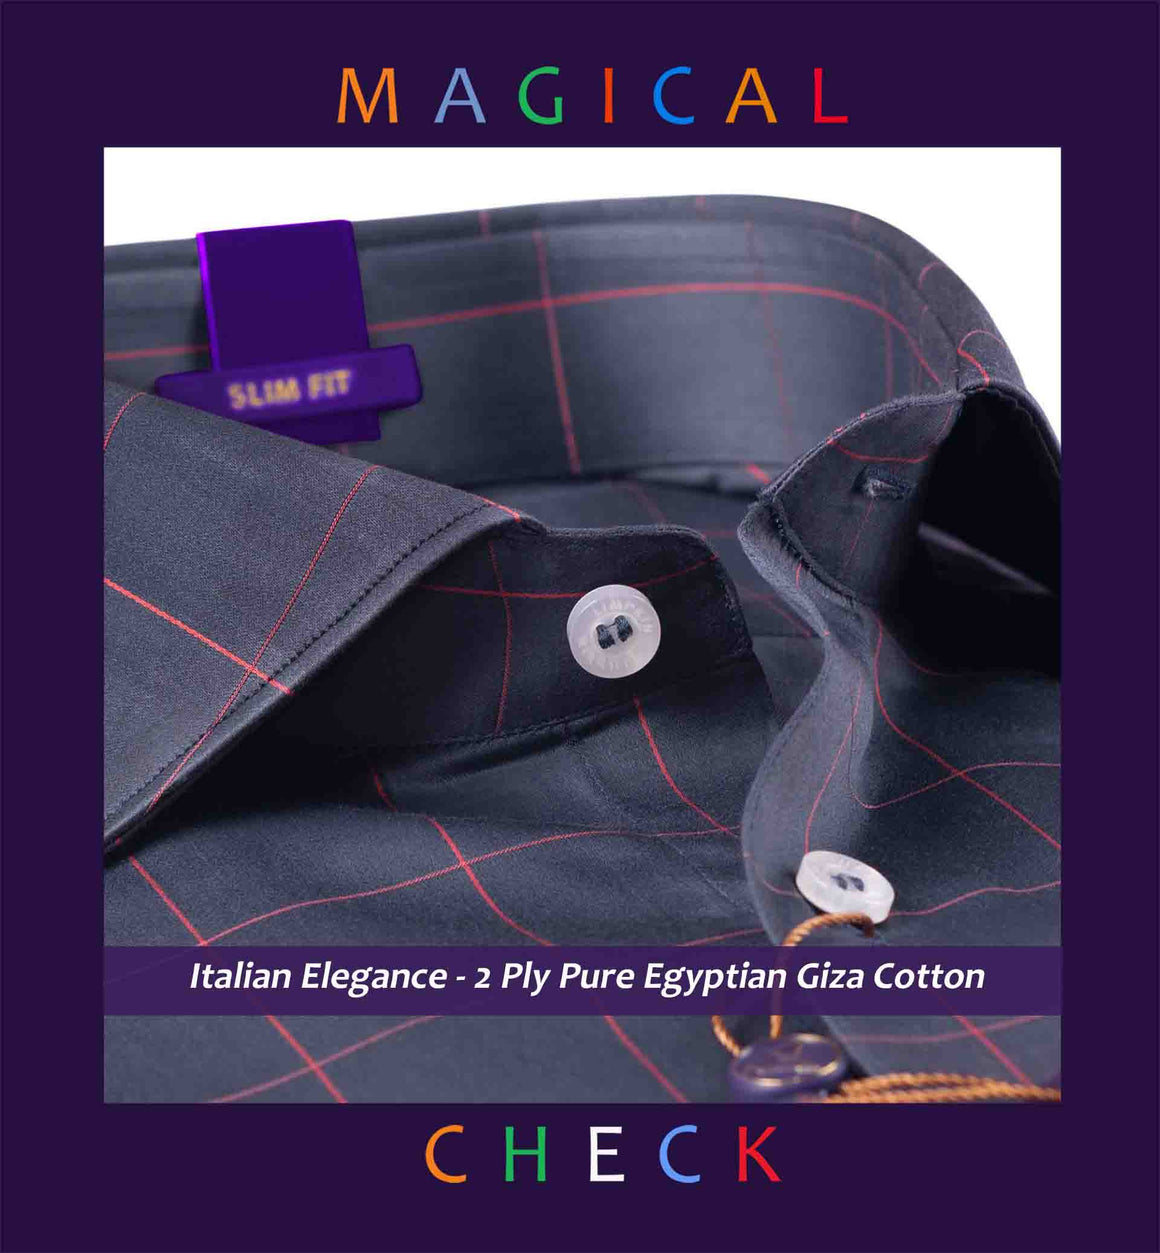 Niagara- Anchor Grey & Orange Magical Check- 2 Ply Pure Egyptian Giza Cotton- Delivery from 30th Sep